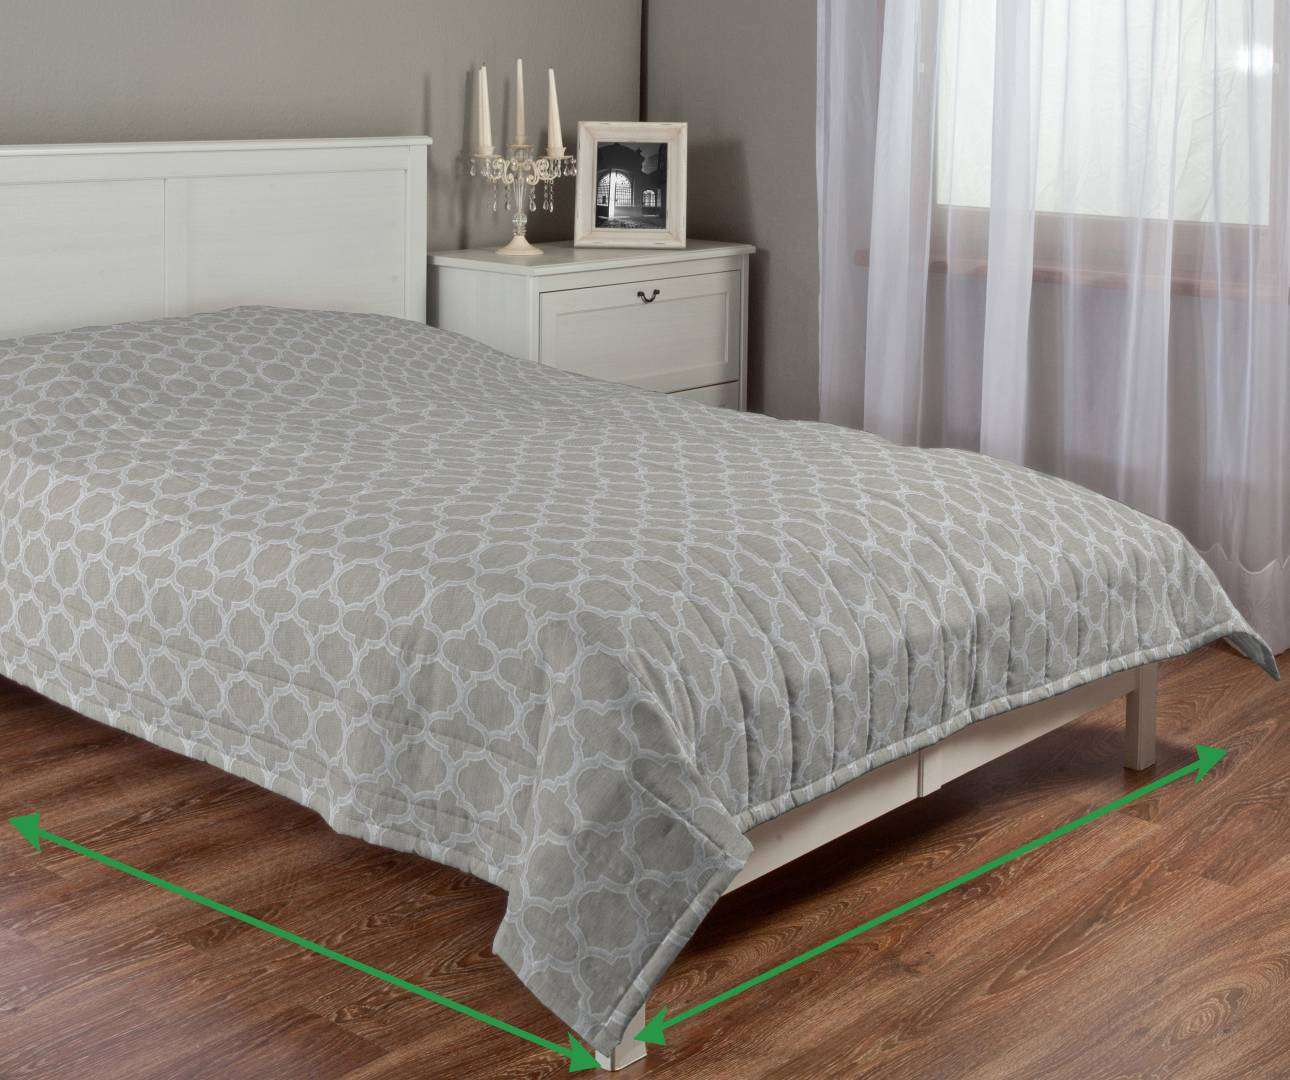 Quilted throw (vertical quilt pattern) in collection Rustica, fabric: 138-25